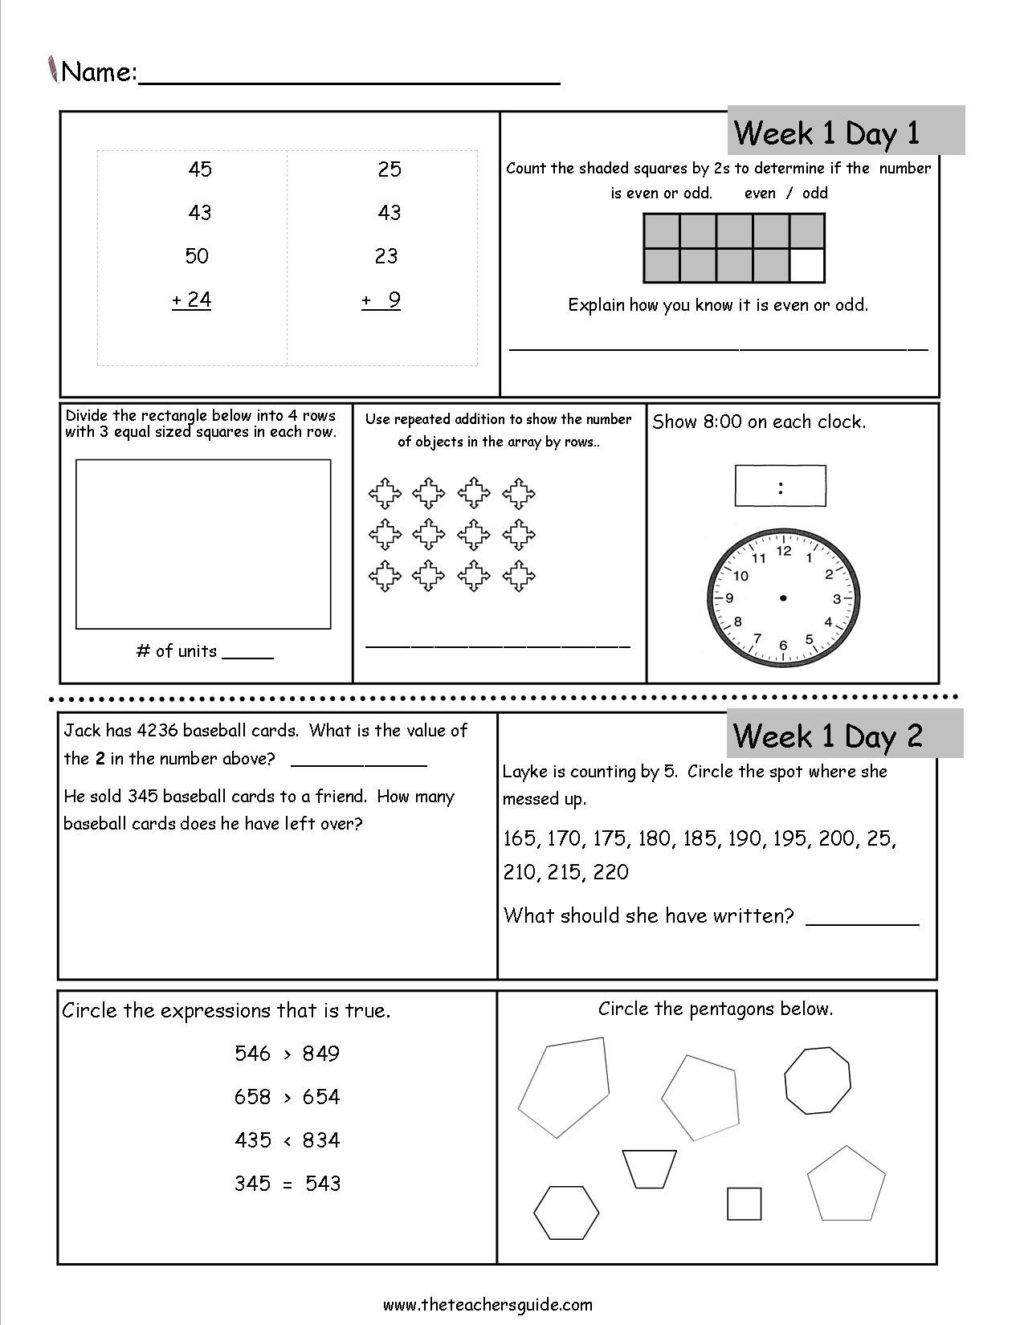 Istep Practice Worksheets 5th Grade Worksheet Incredible 3rde Practice Worksheets Picture